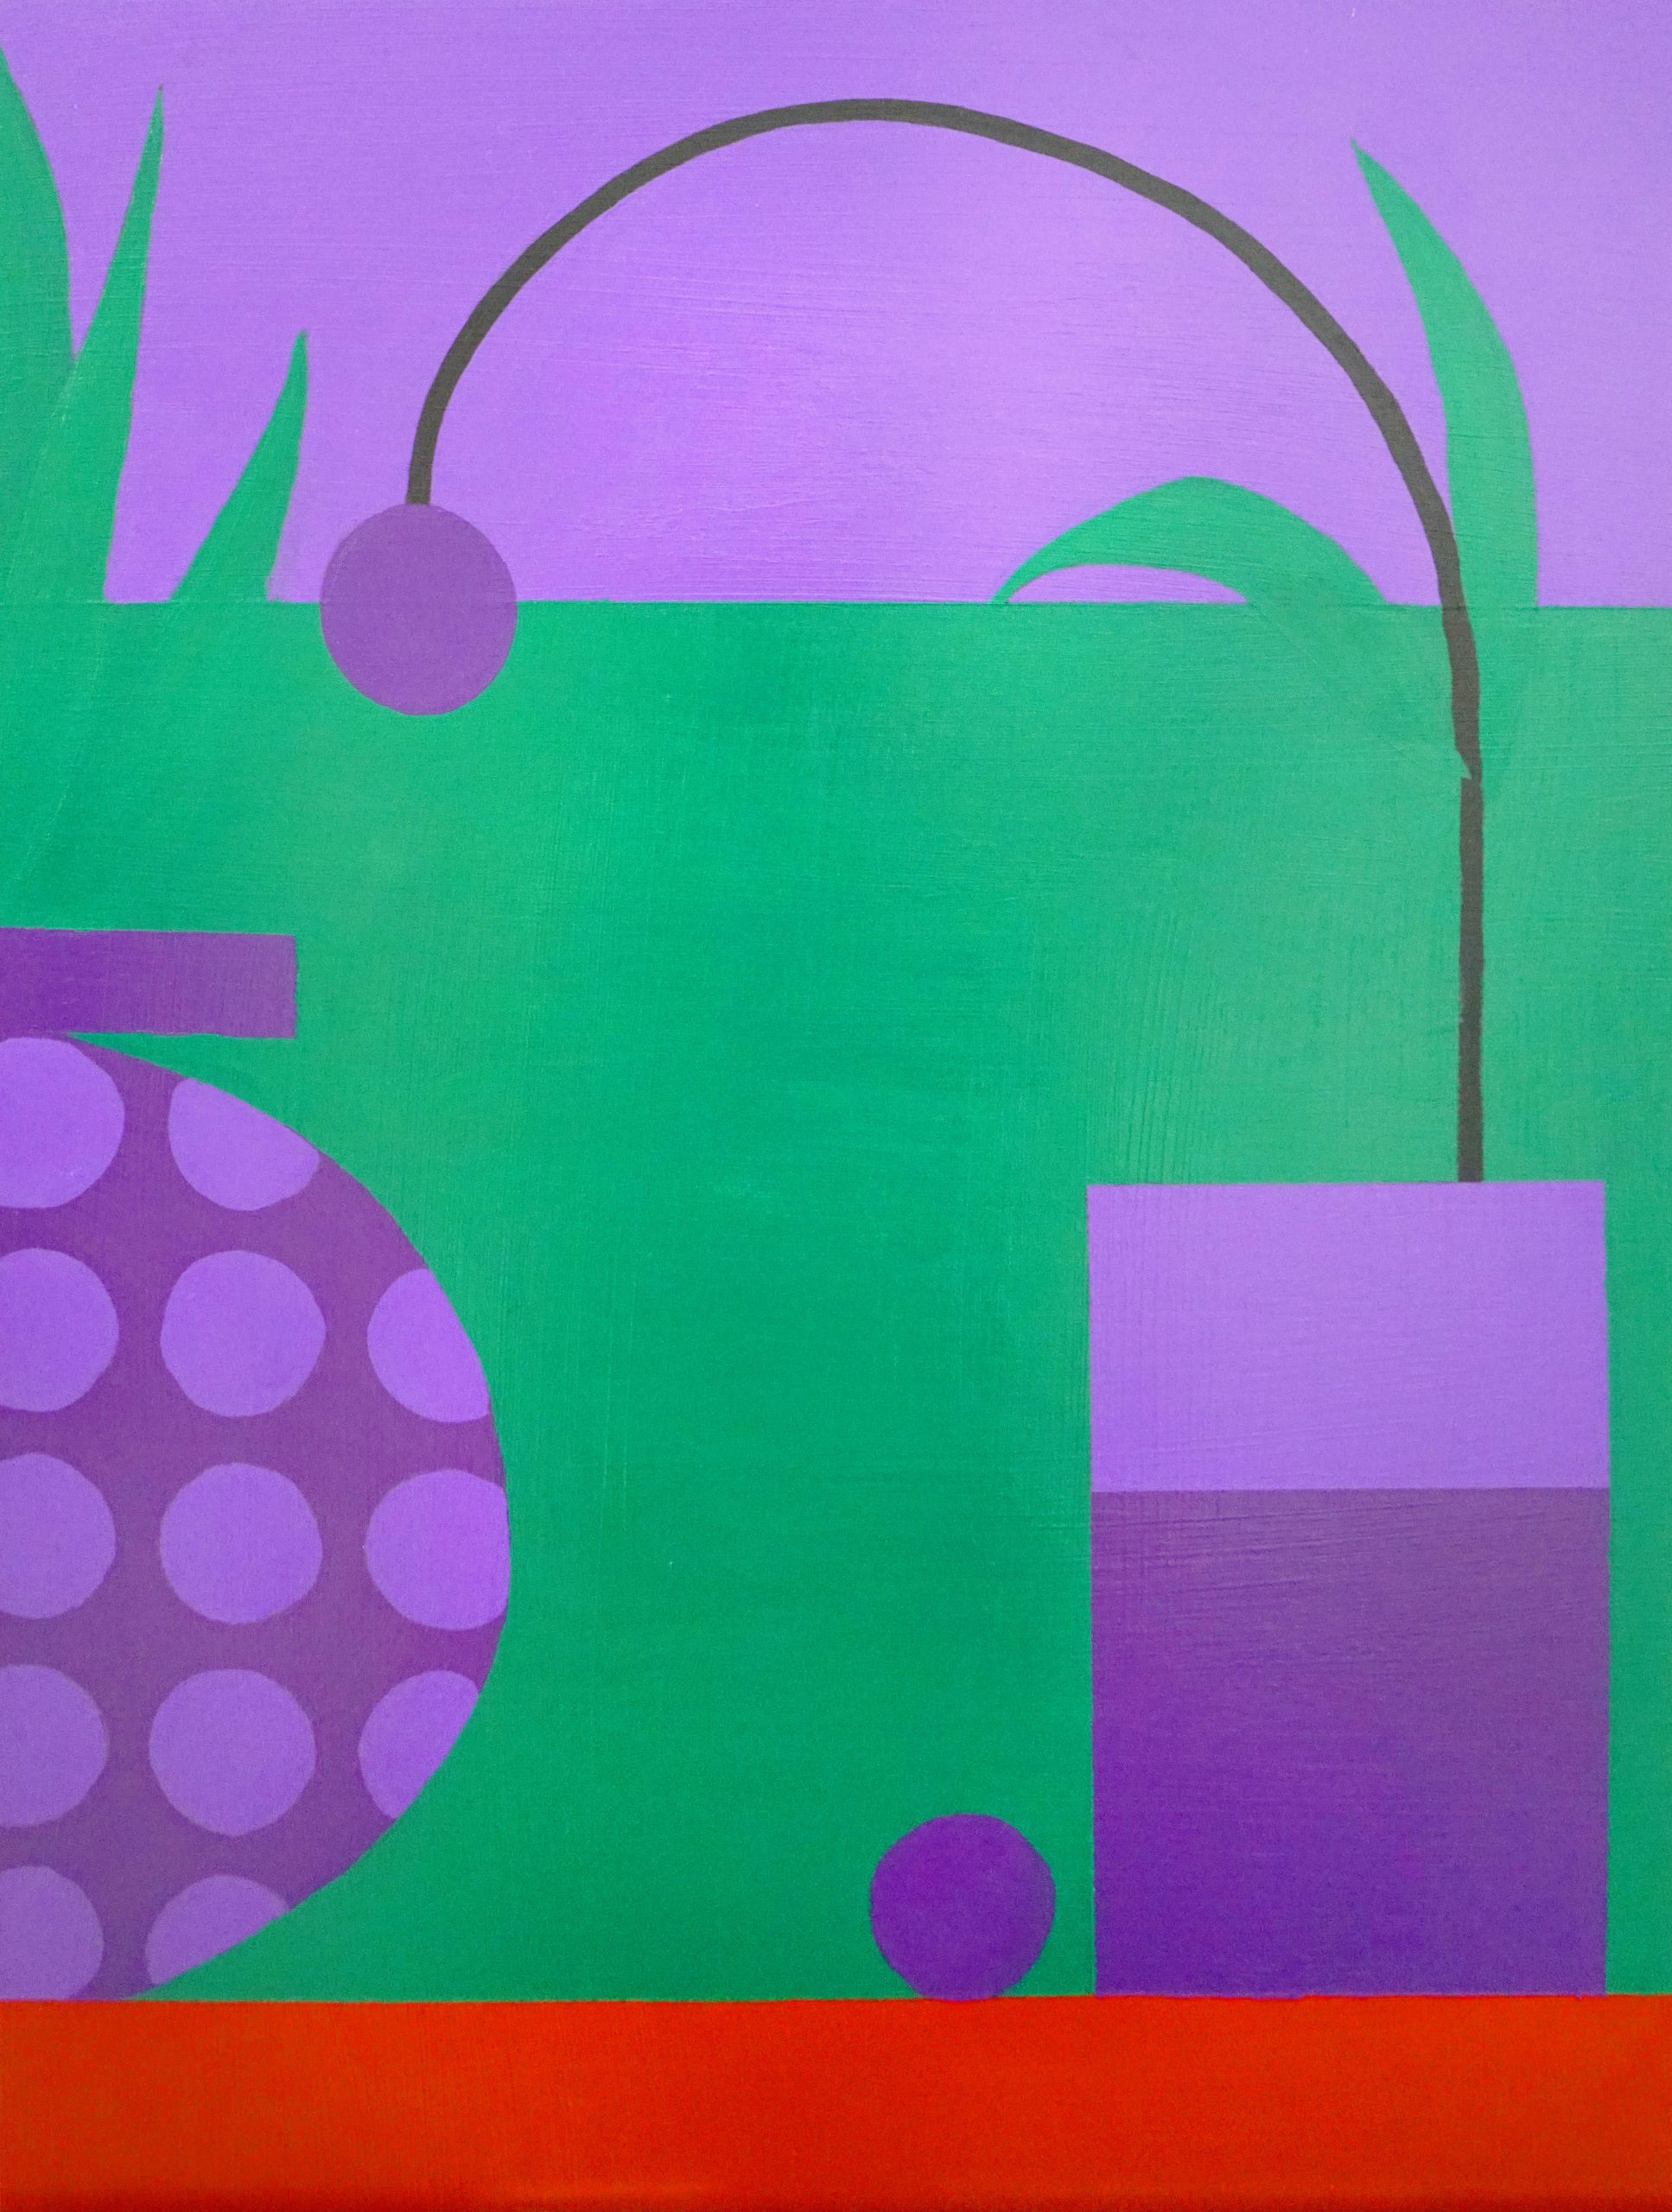 Jon Key.<em> Violet Still Life No. 2</em>, 2019. Acrylic on panel, 24 x 18 inches (61 x 45.7 cm)